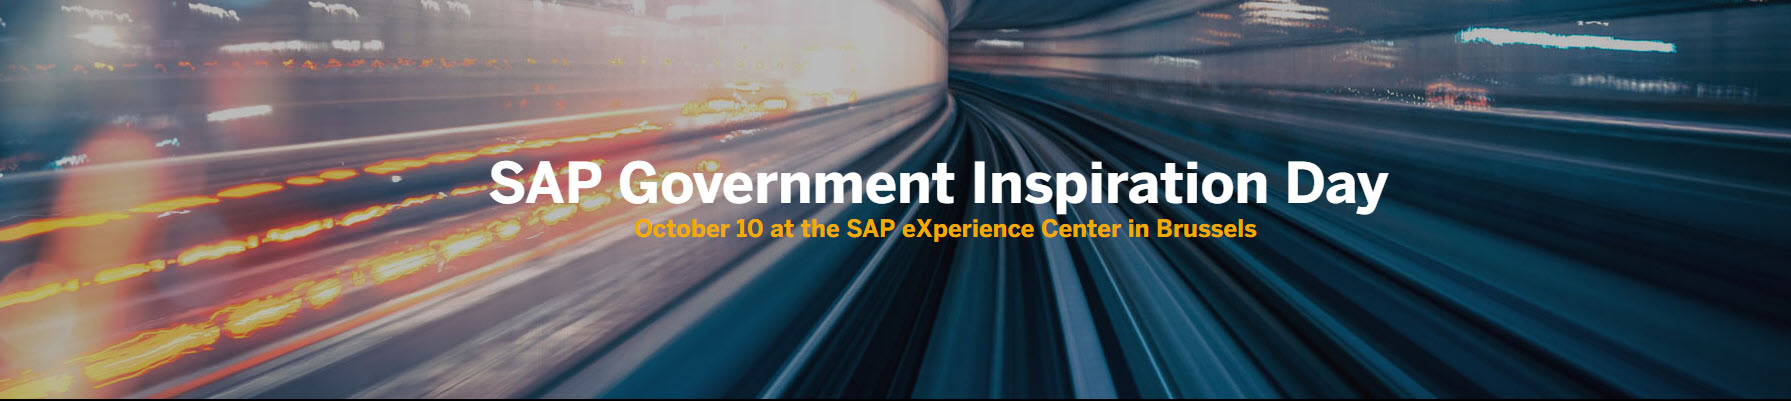 SAP Government Inspiration Day